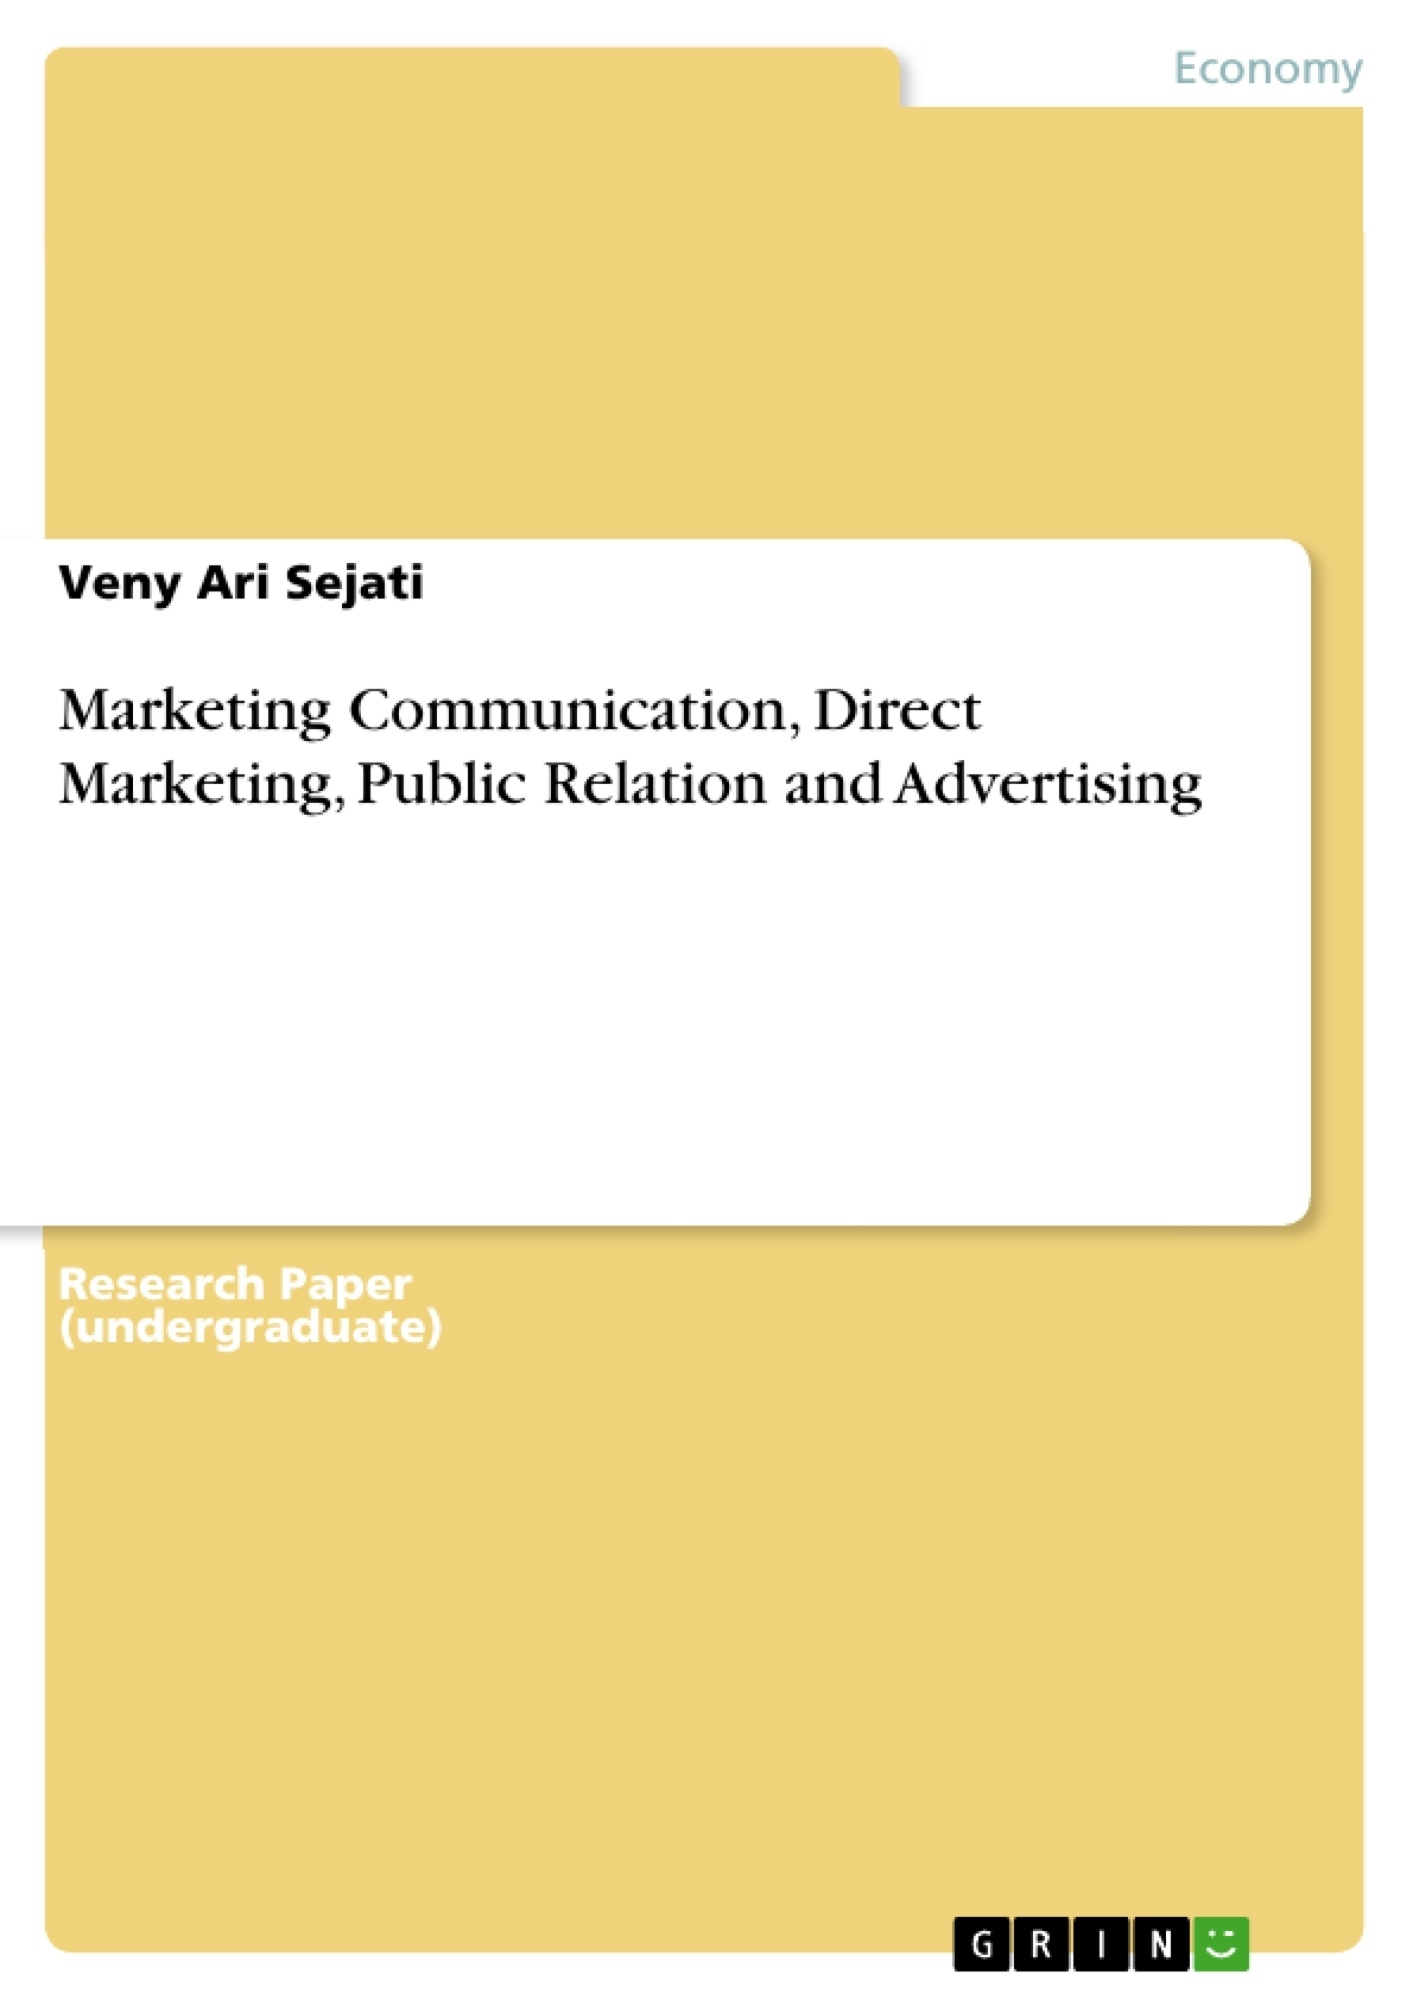 Title: Marketing Communication, Direct Marketing, Public Relation and Advertising